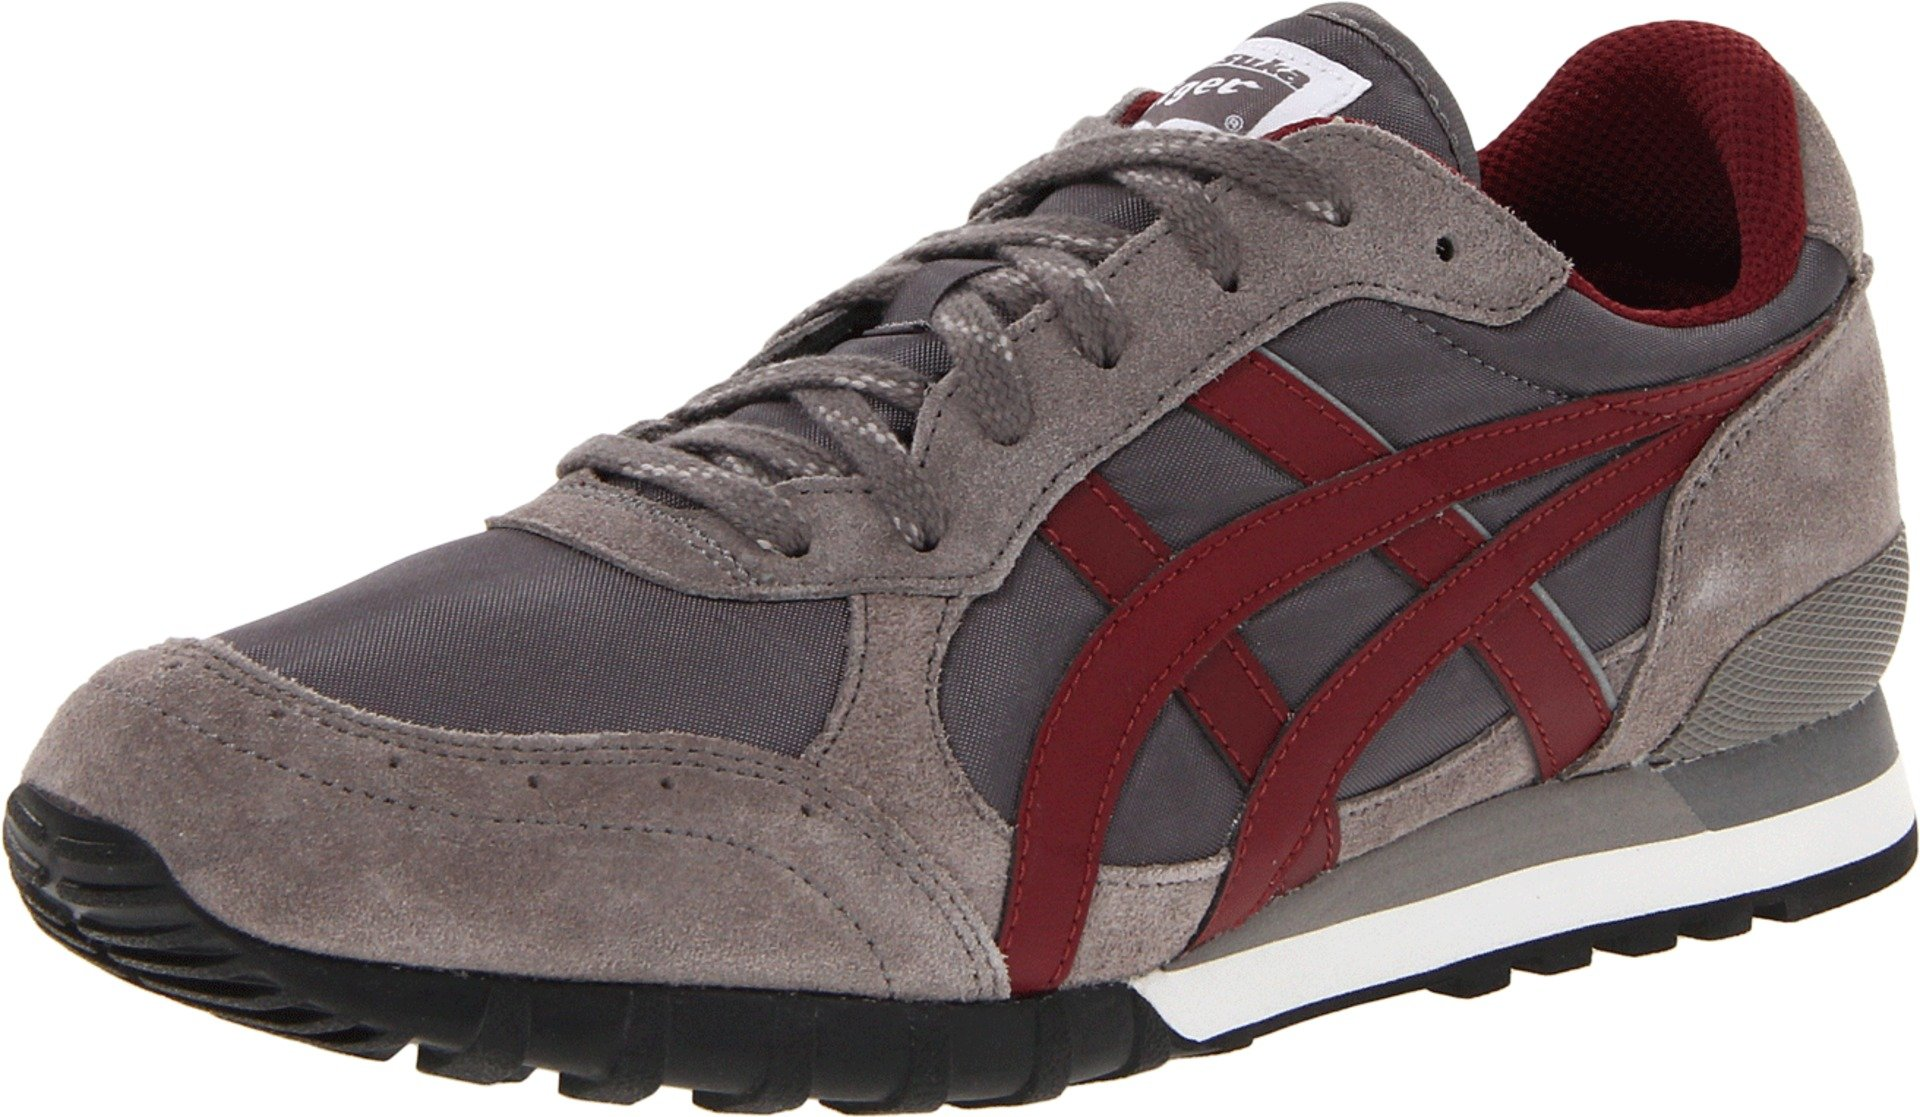 Onitsuka Tiger Unisex-Adult Colorado Eighty-Five Fashion Sneaker